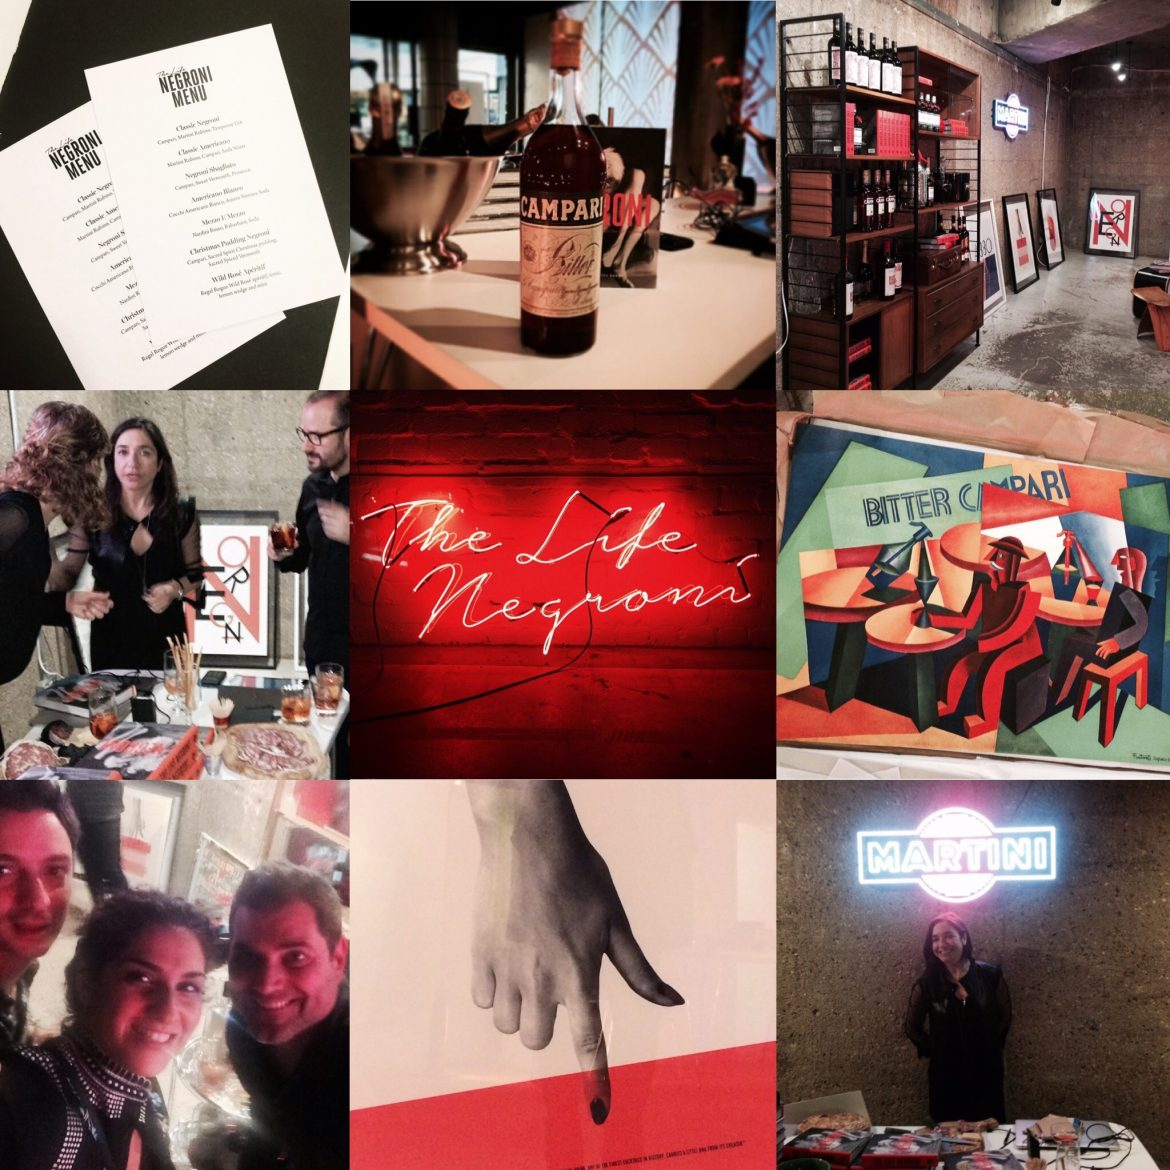 Collage from The Life Negroni book launch